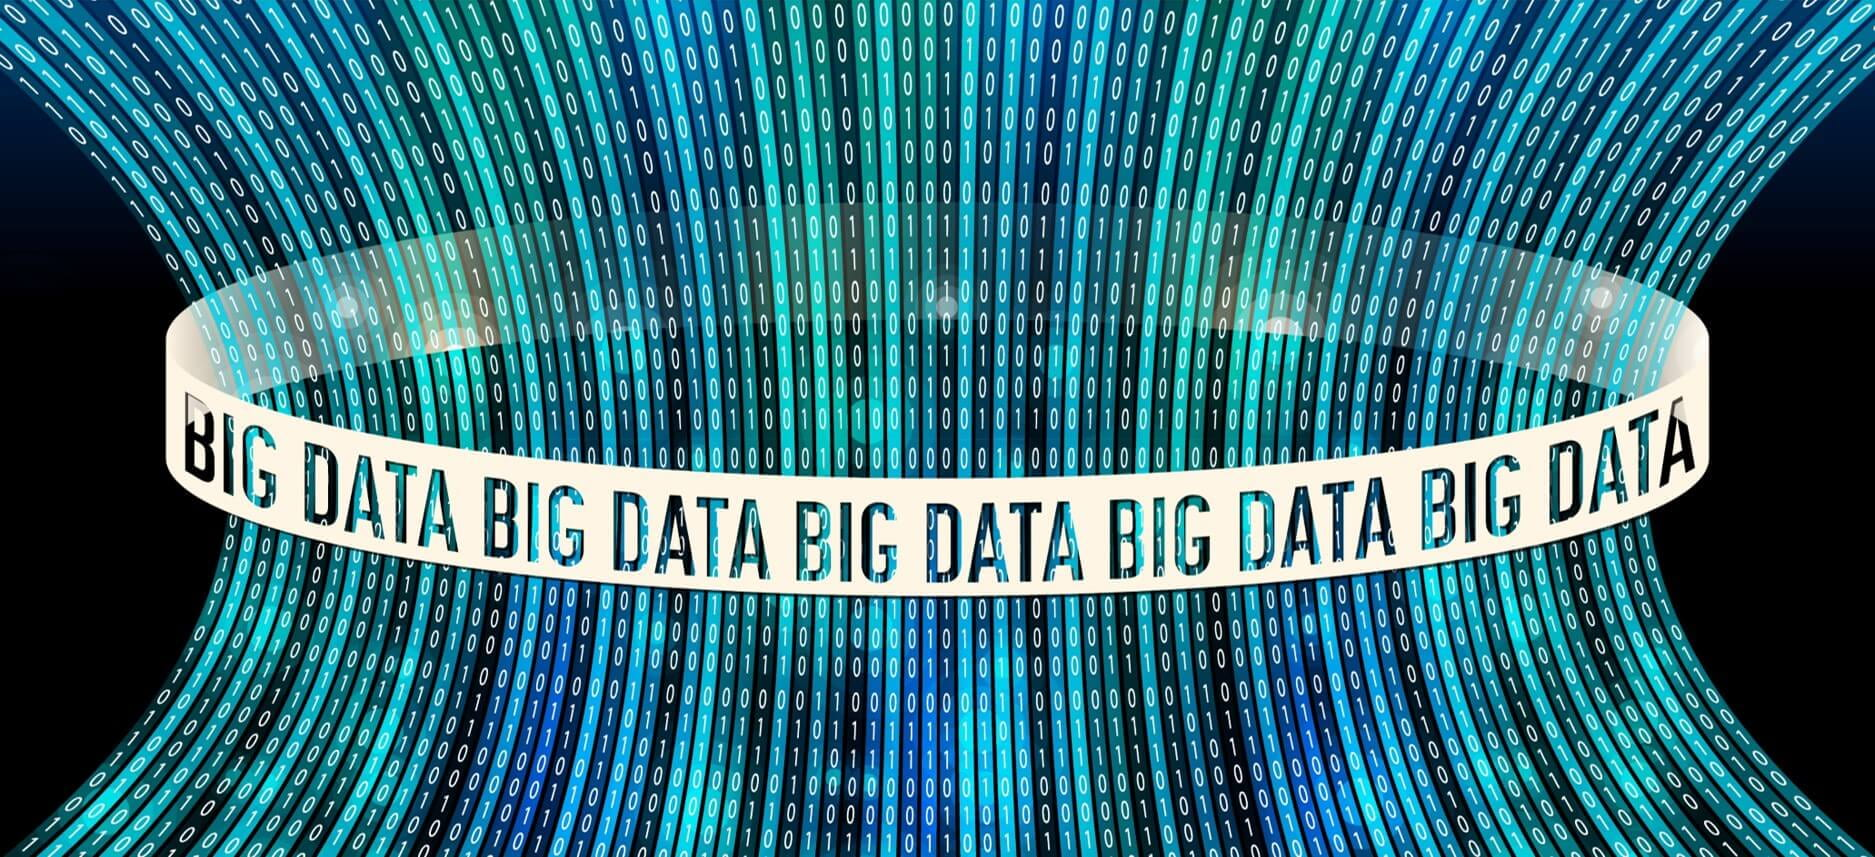 Why Big Data is a Human Rights Concern